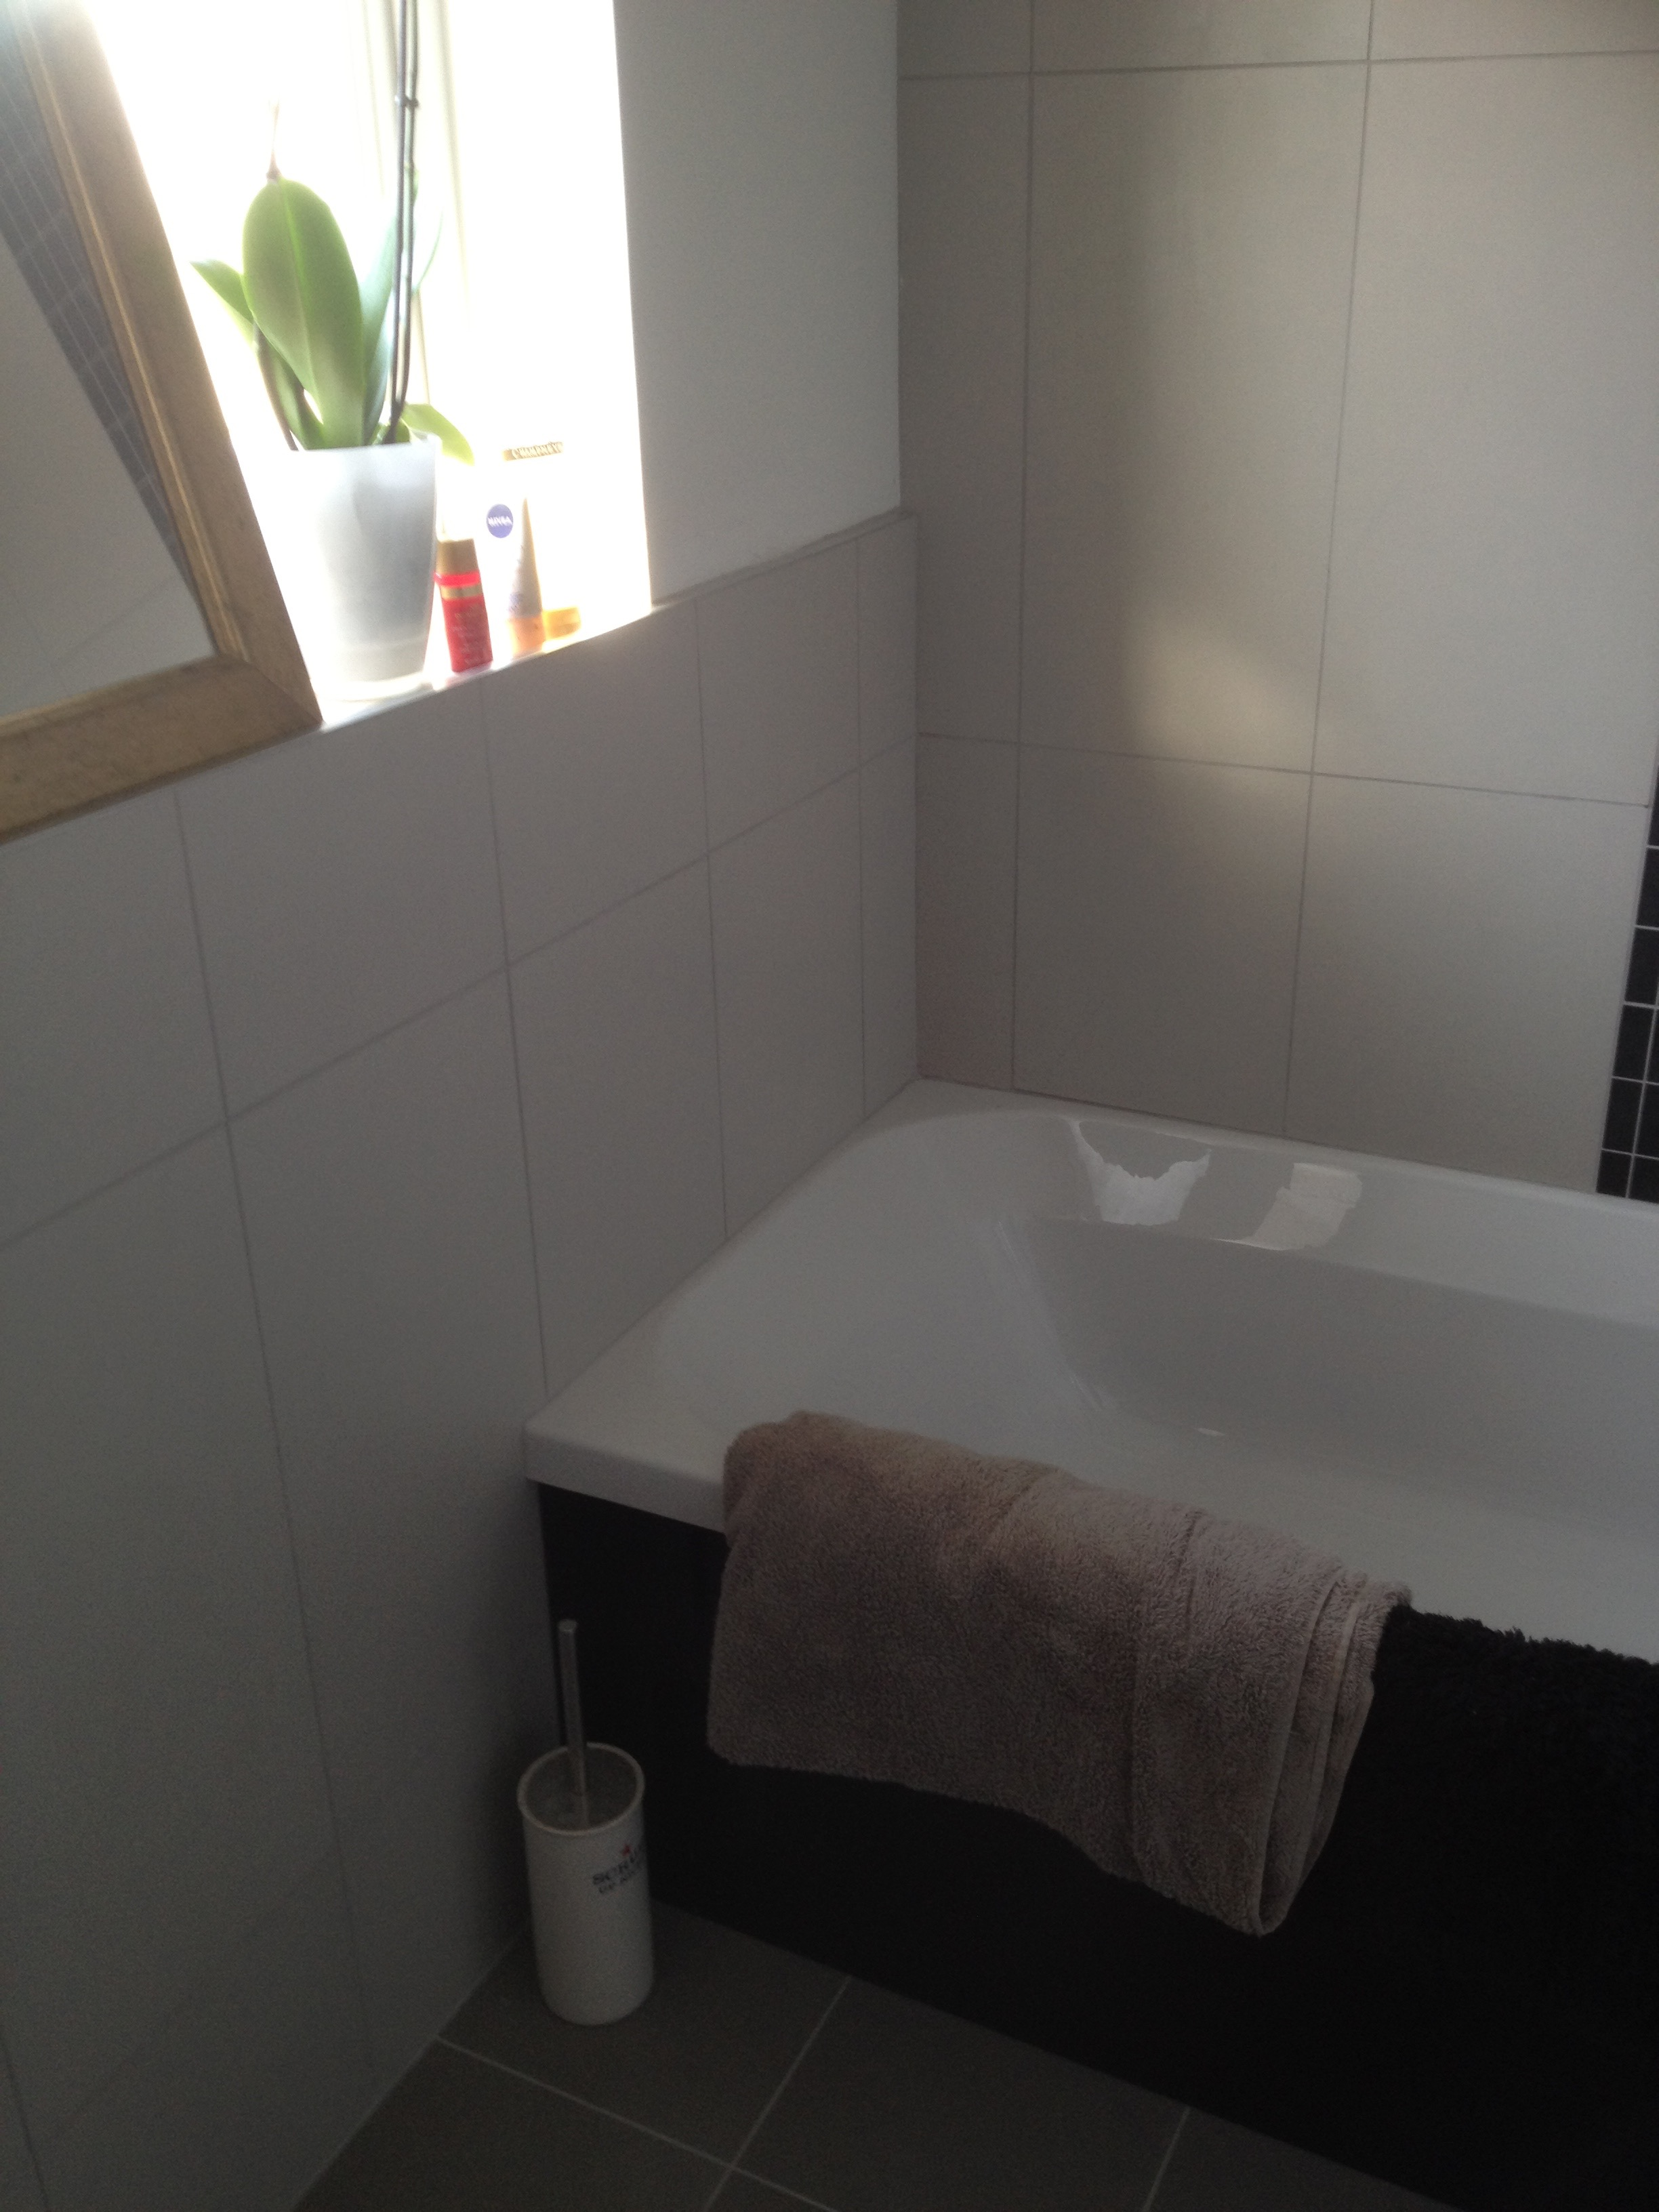 Bathroom in littlehampton arun bathrooms scored porcelain feature tiles and underfloor heating co ordinating porcelain floor tiles over ufh plywood template for granite worktop black gloss dailygadgetfo Gallery